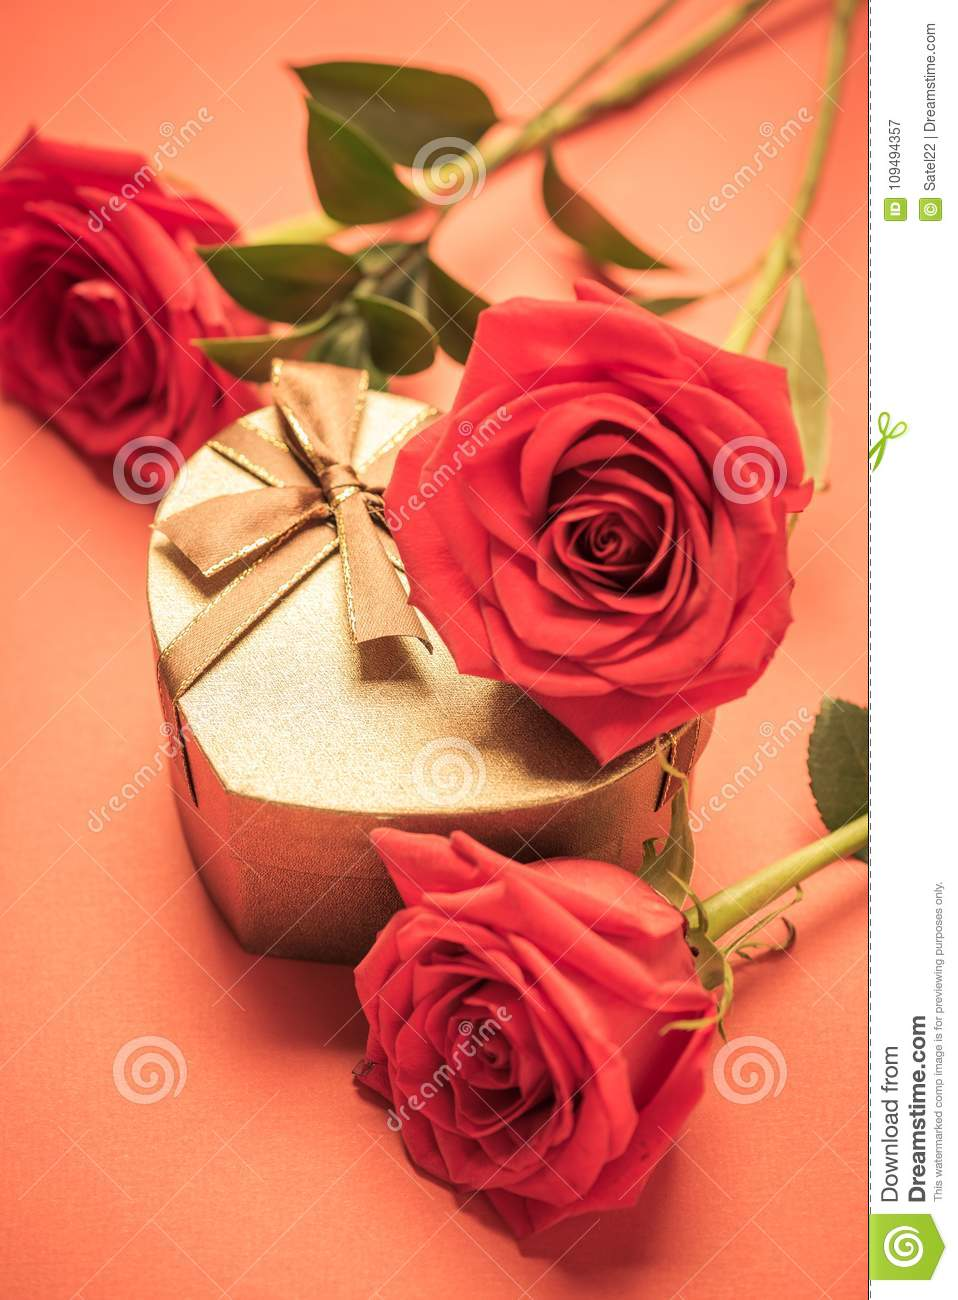 A Valentines Day Or Wedding Gift Background Stock Image Image Of